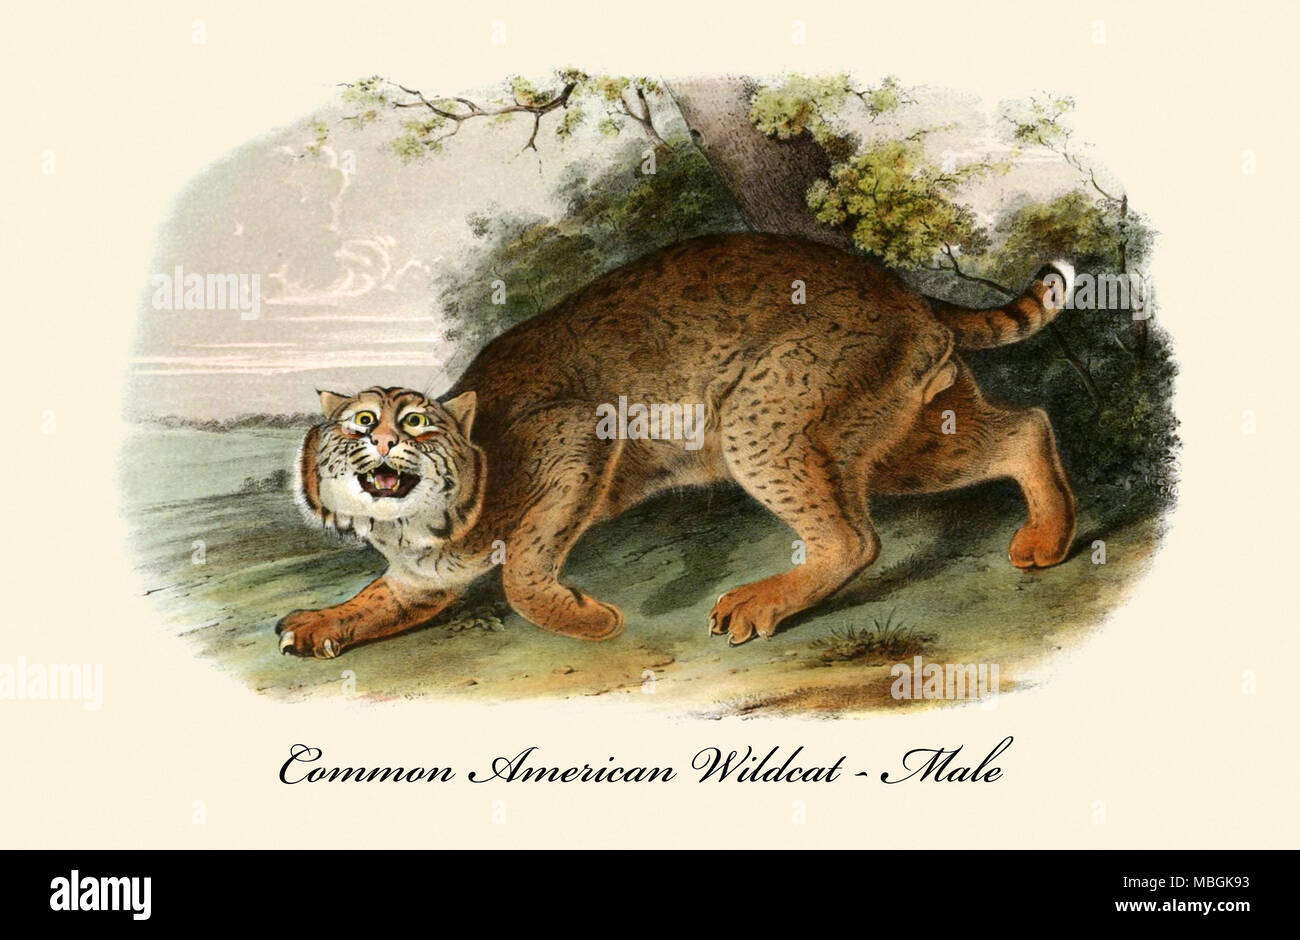 Common American Wildcat-Male - Stock Image